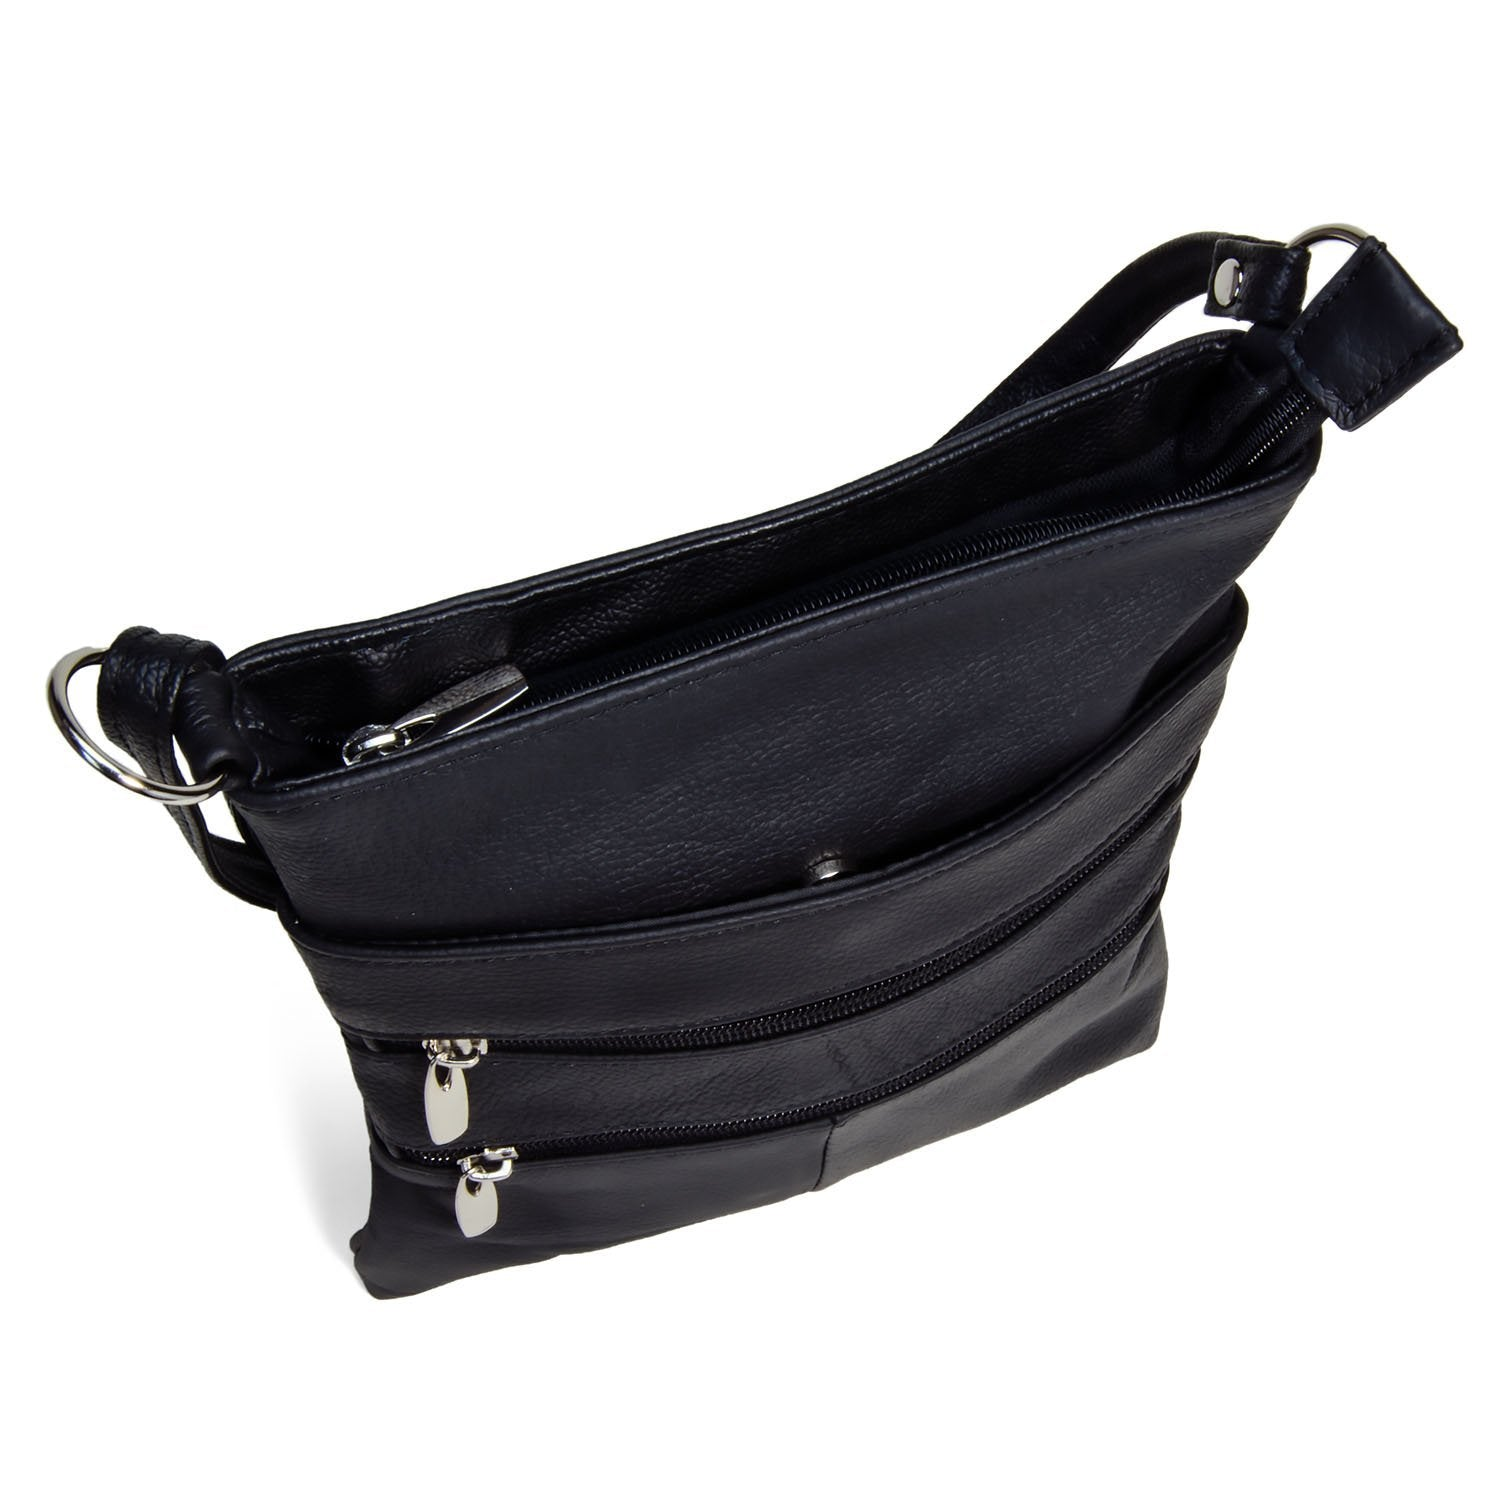 9d77553c1f Genuine Leather Crossover Body Purse – ccwbags.com